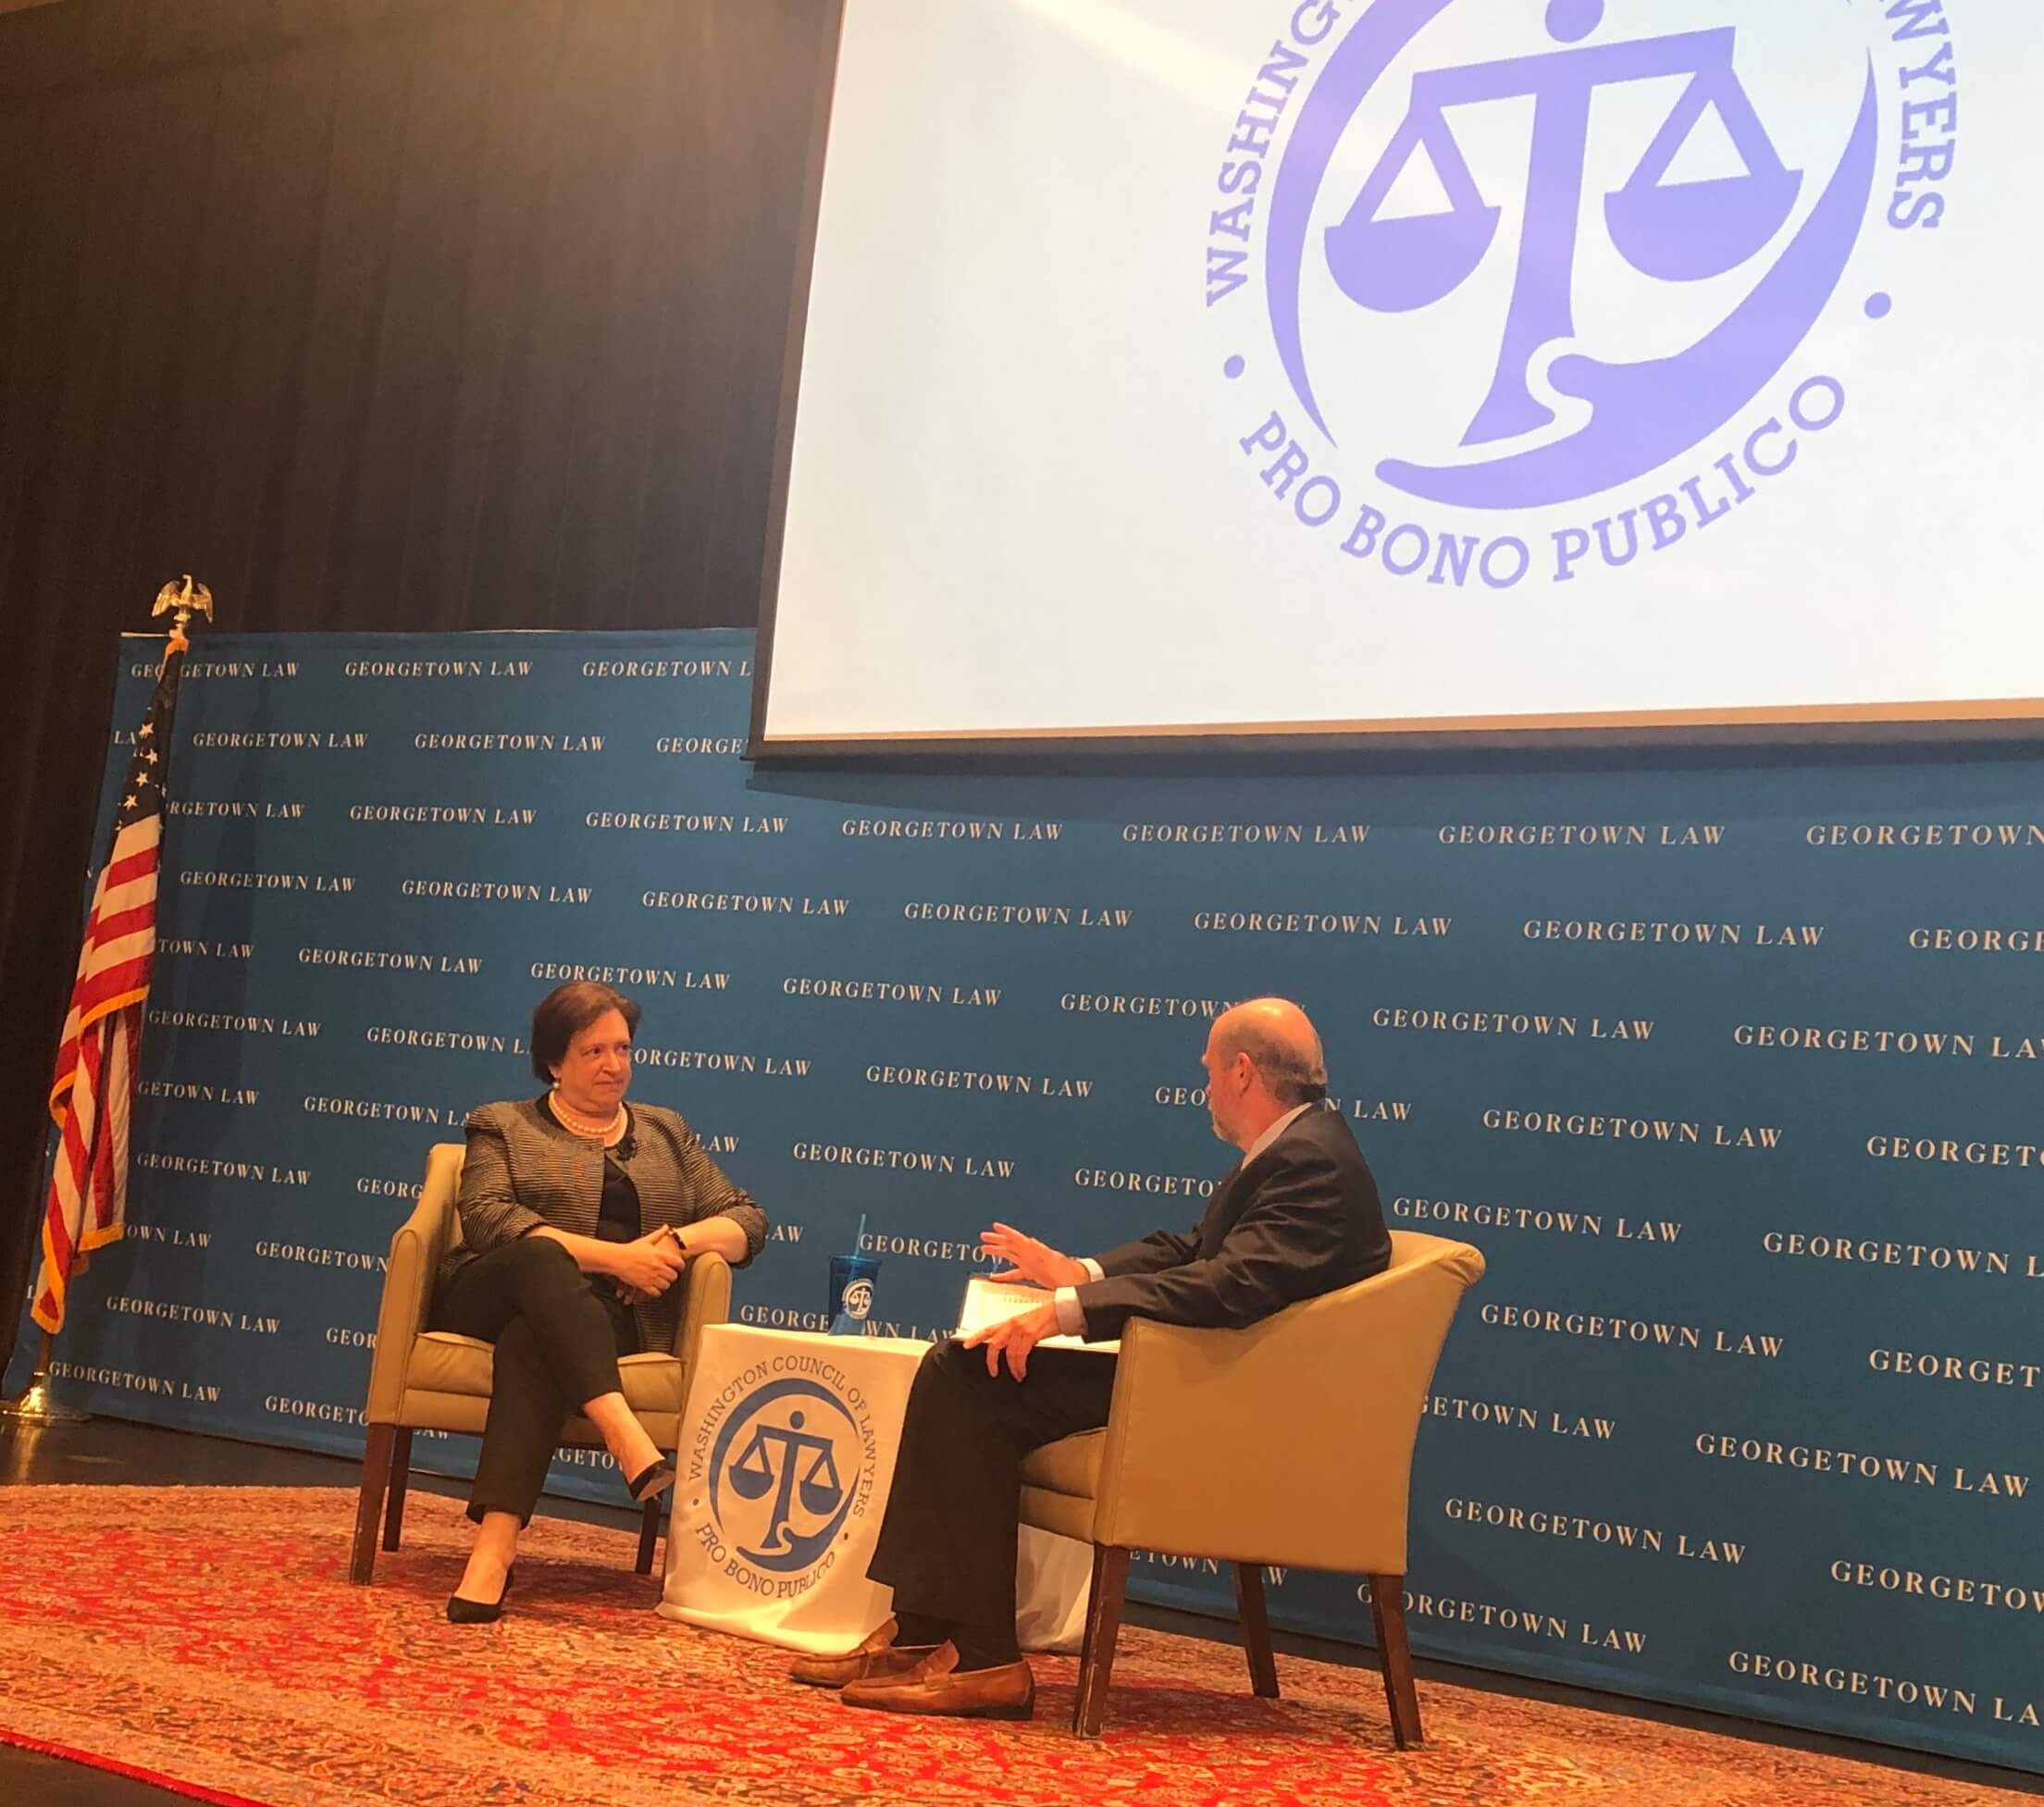 Photo: Justice Kagan & Dean Treanor Seated Facing Each Other